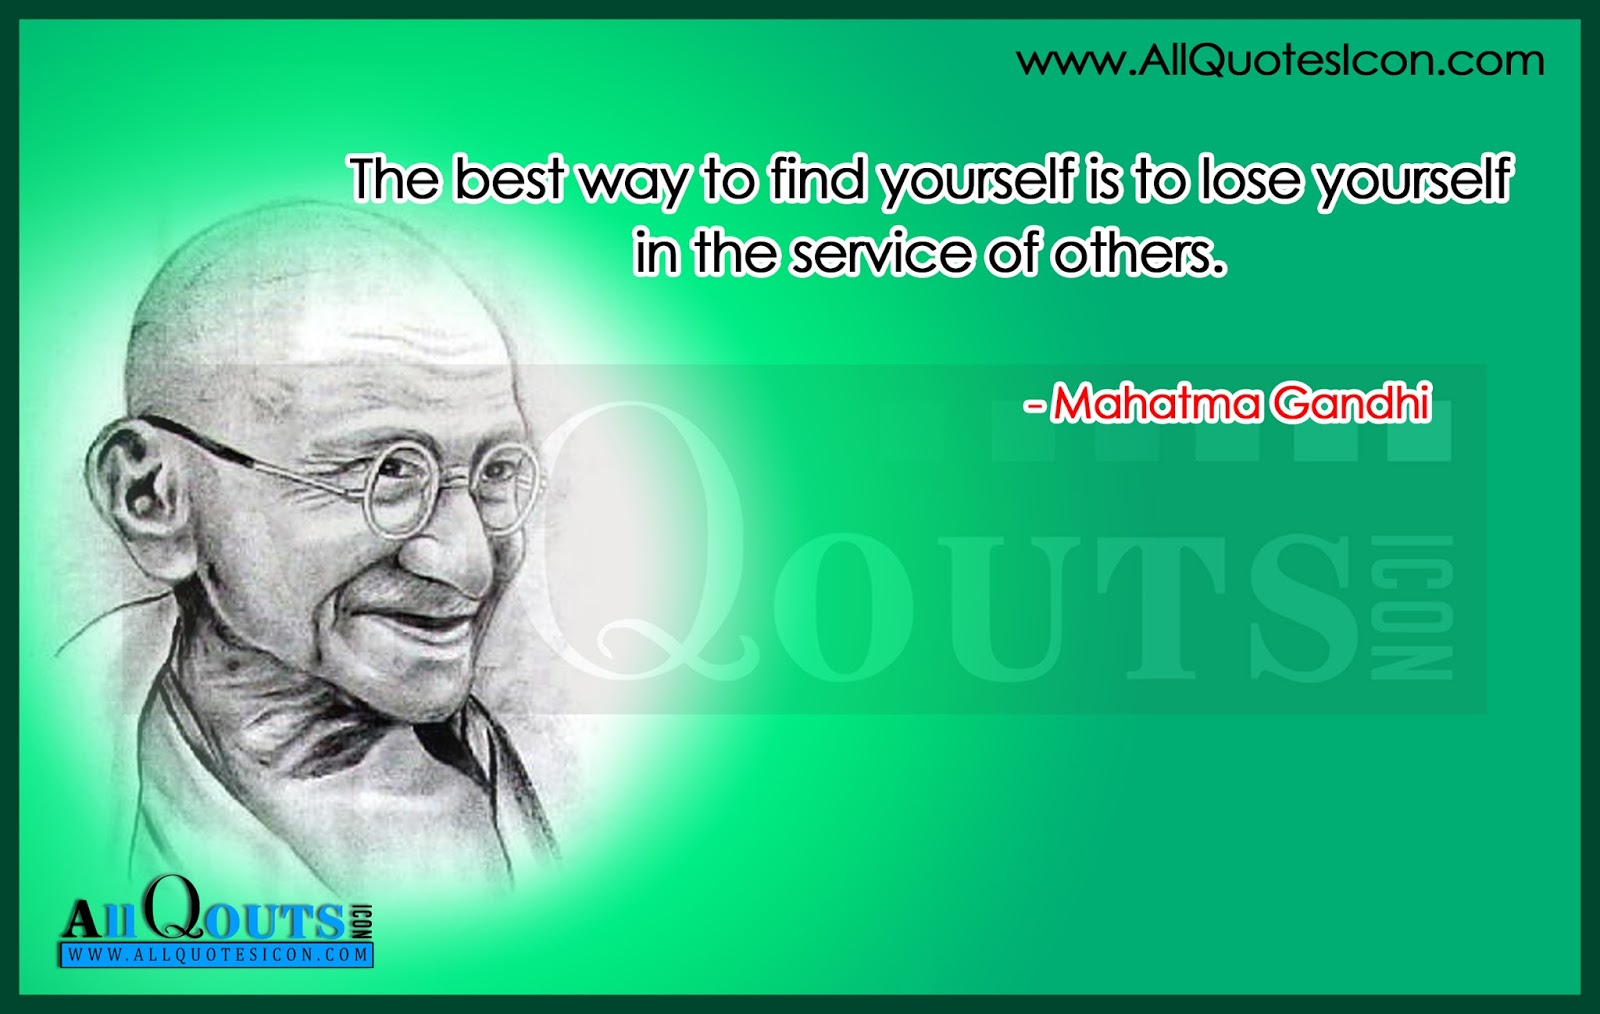 biography of mahatma gandhi telugu life quotes of mahatma